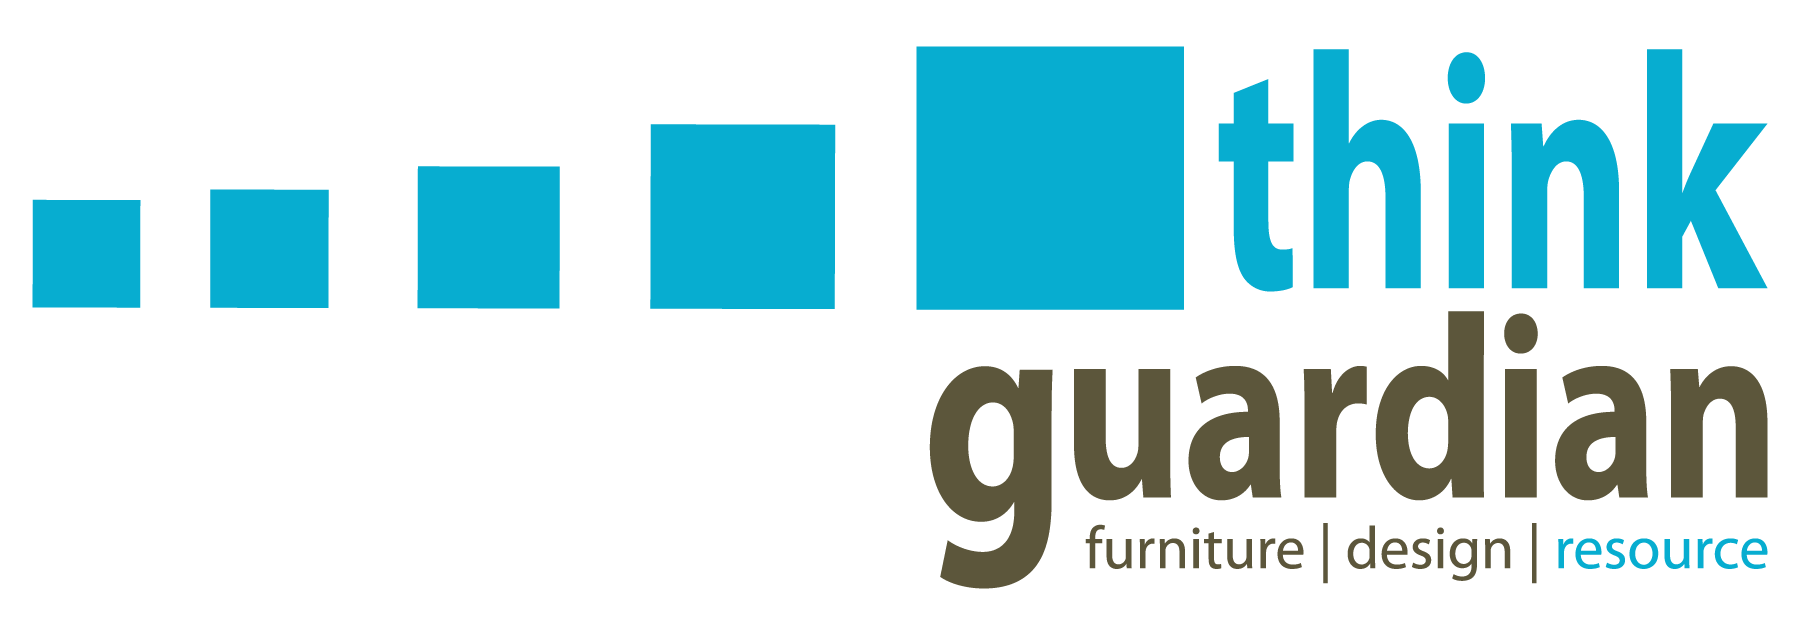 Guardian Furniture